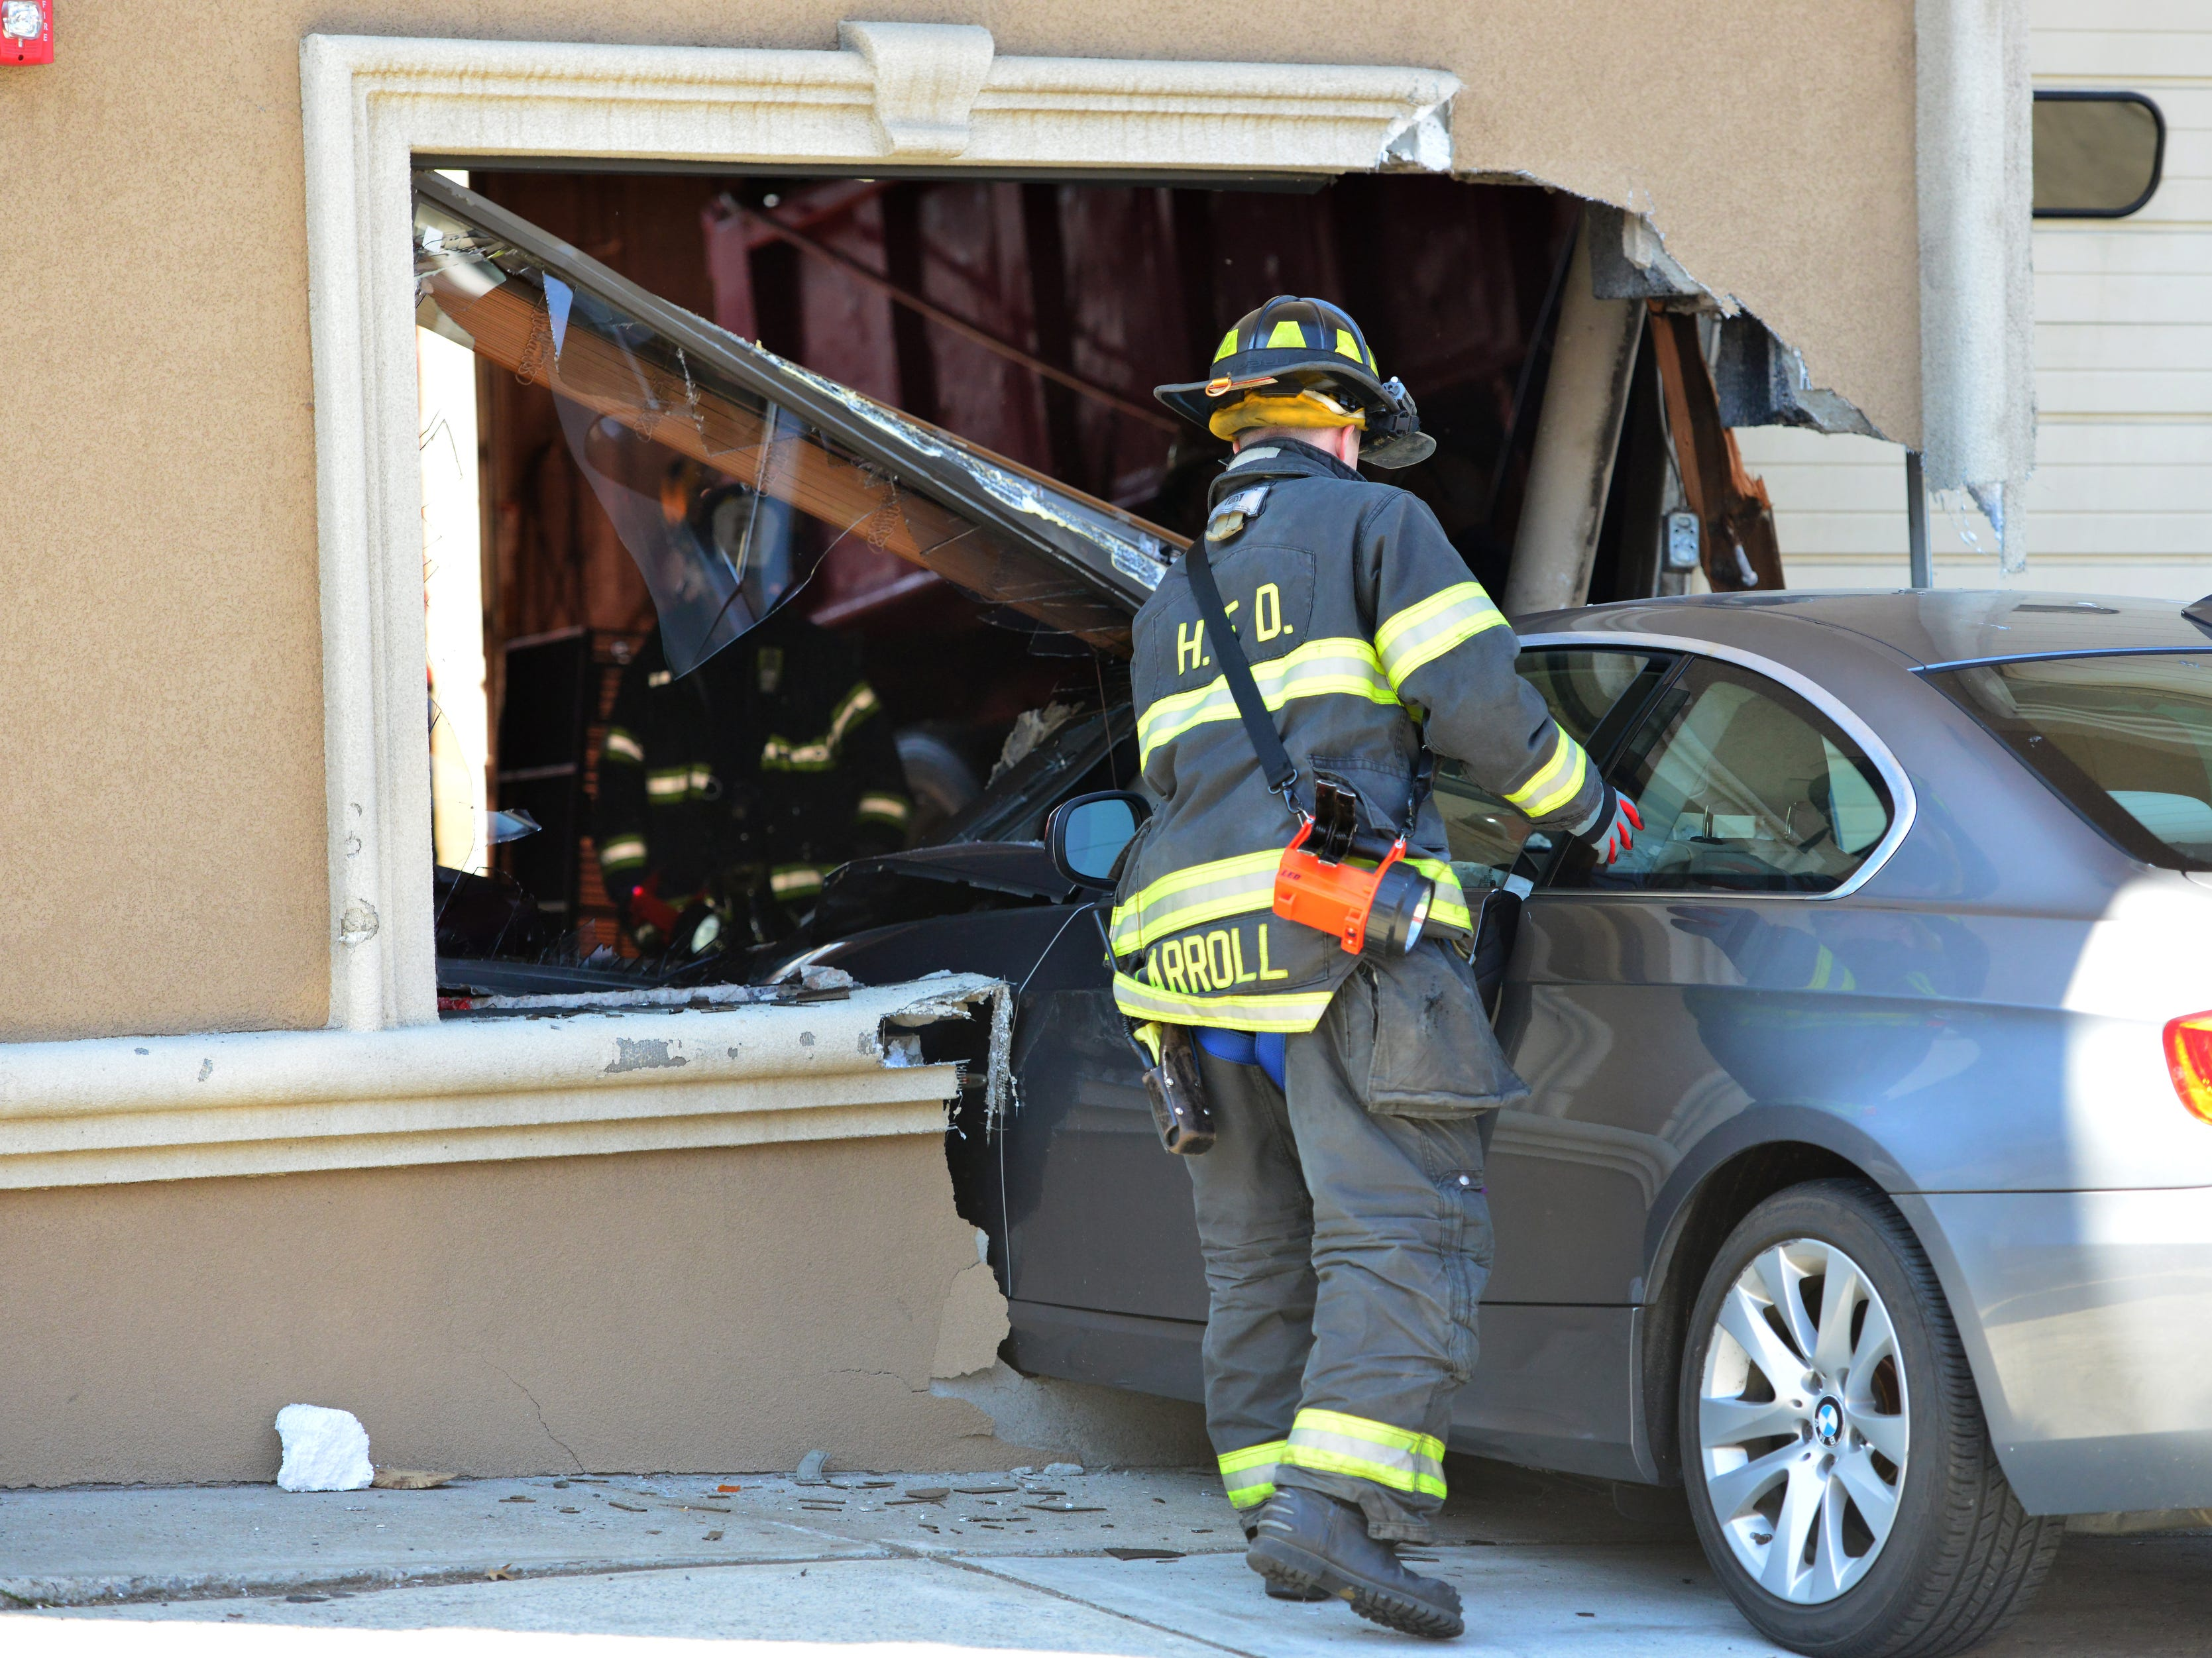 The female drive refused medical attention at the scene after driving her car into a building on W. Pleasantview Ave in Hackensack on Wednesday April 3, 2019.